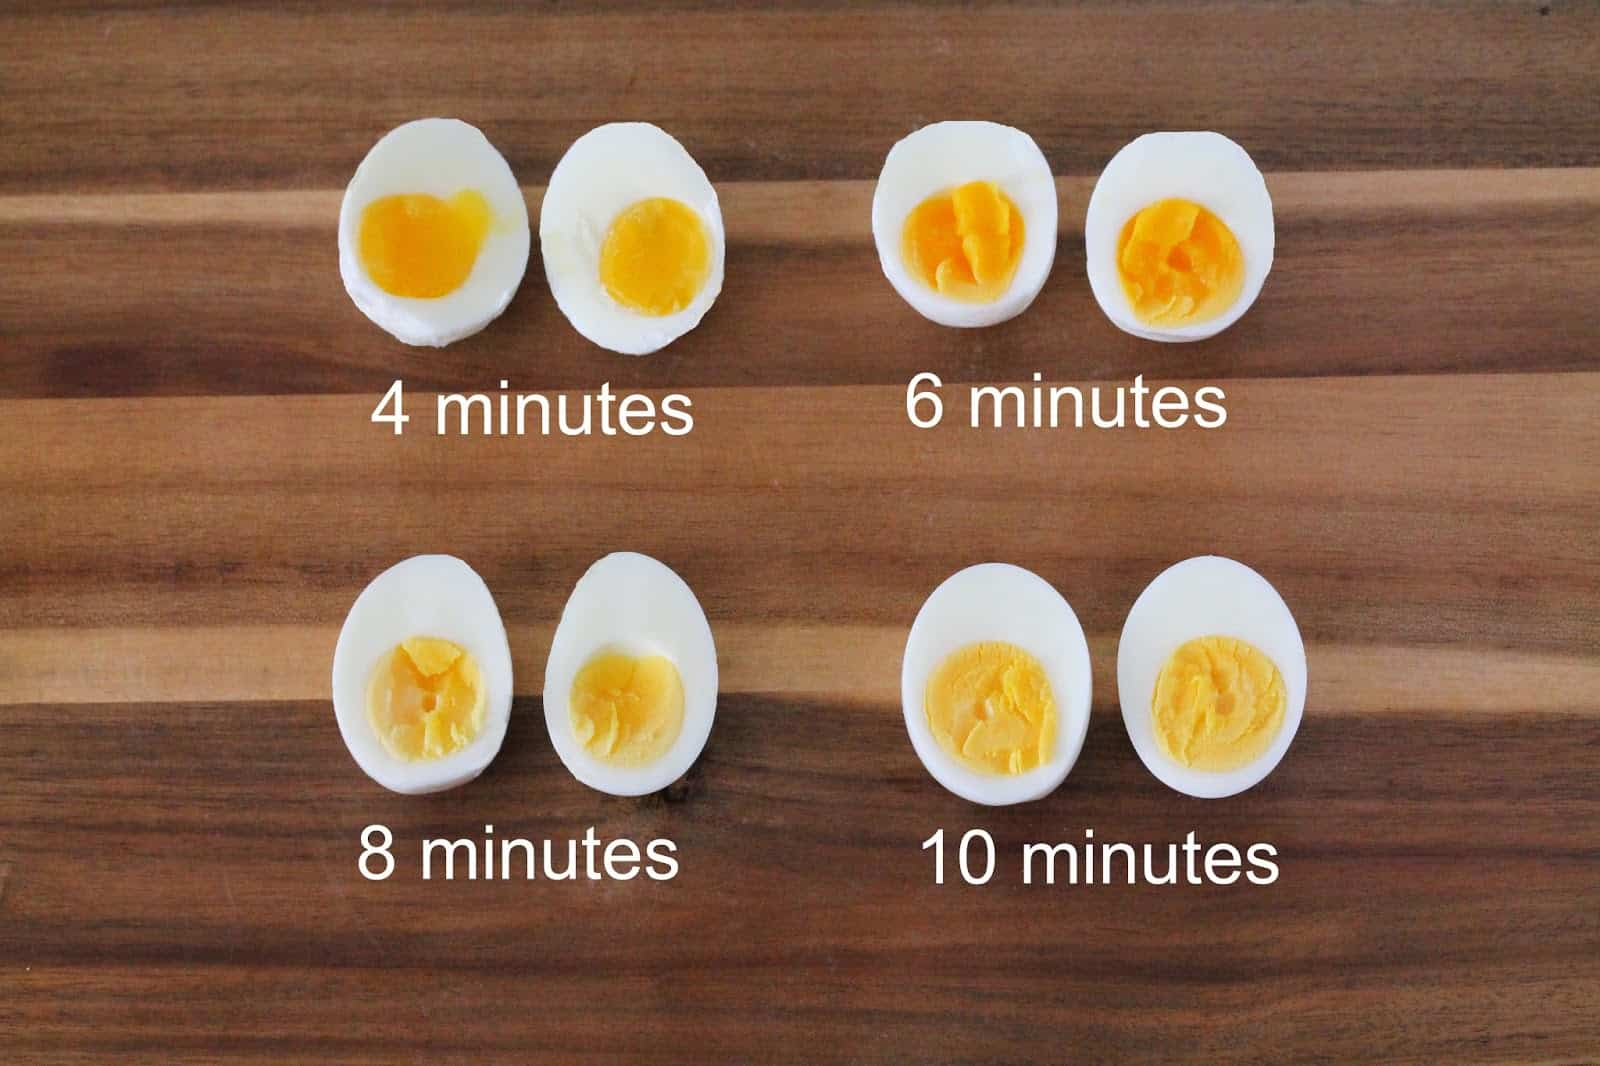 Hard Boiled Eggs at 4 minutes, 6 minutes, 8 minutes, and 10 minutes